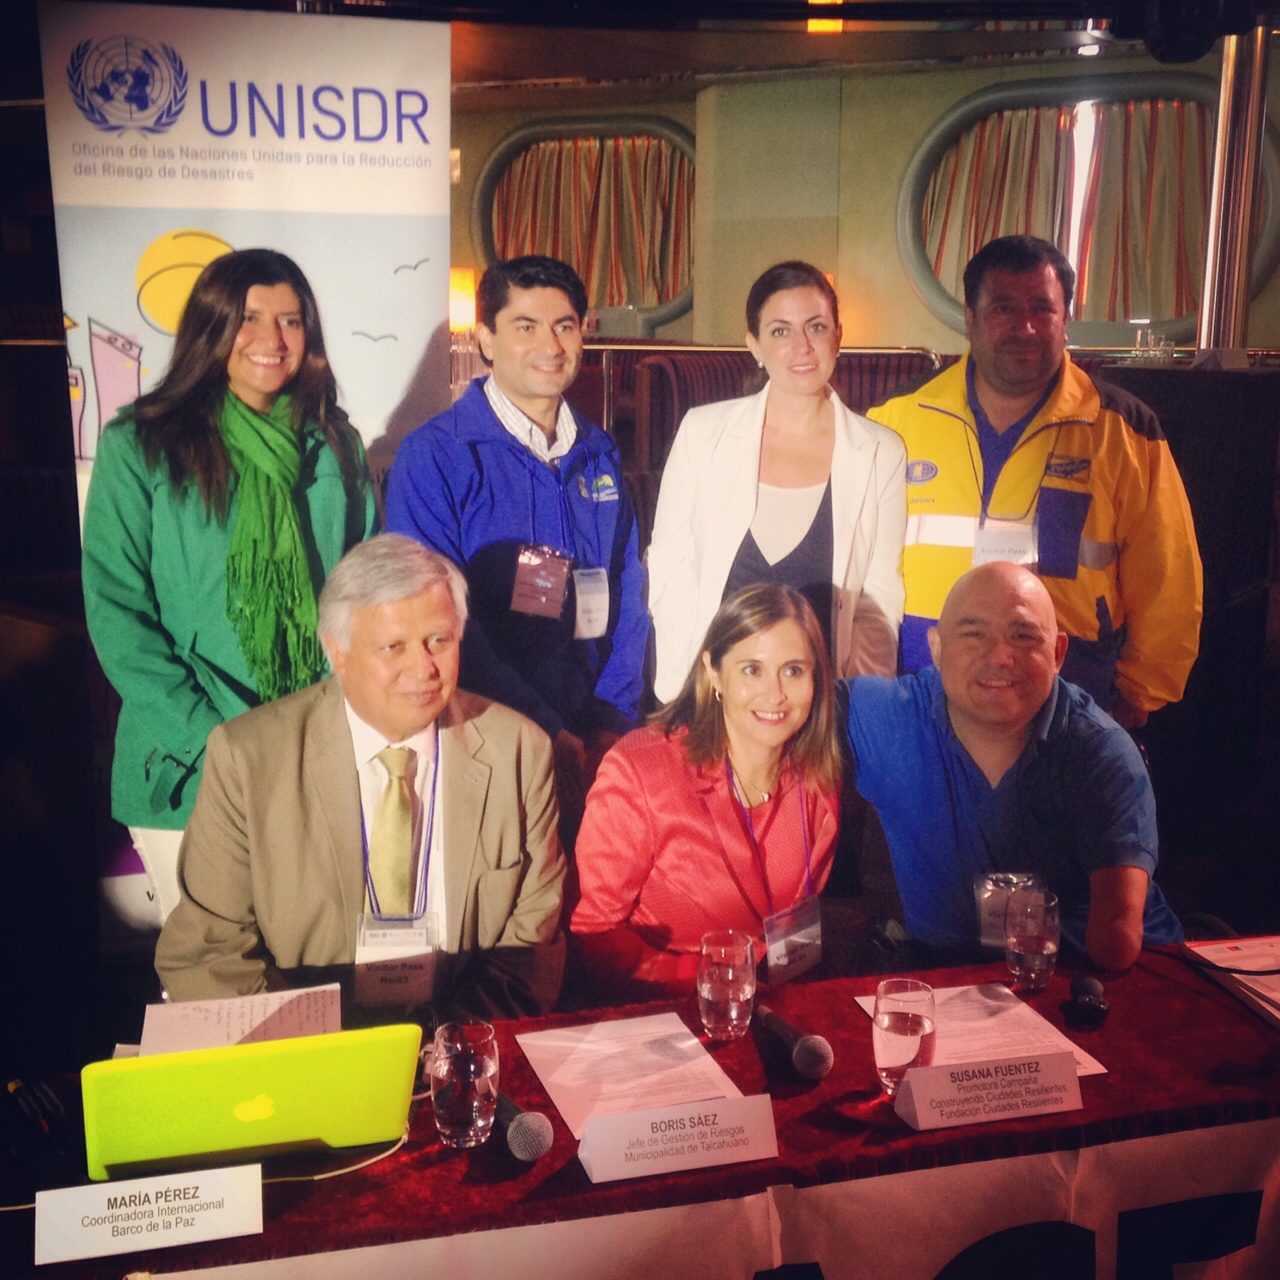 Presenters at the onboard forum in Valparaiso